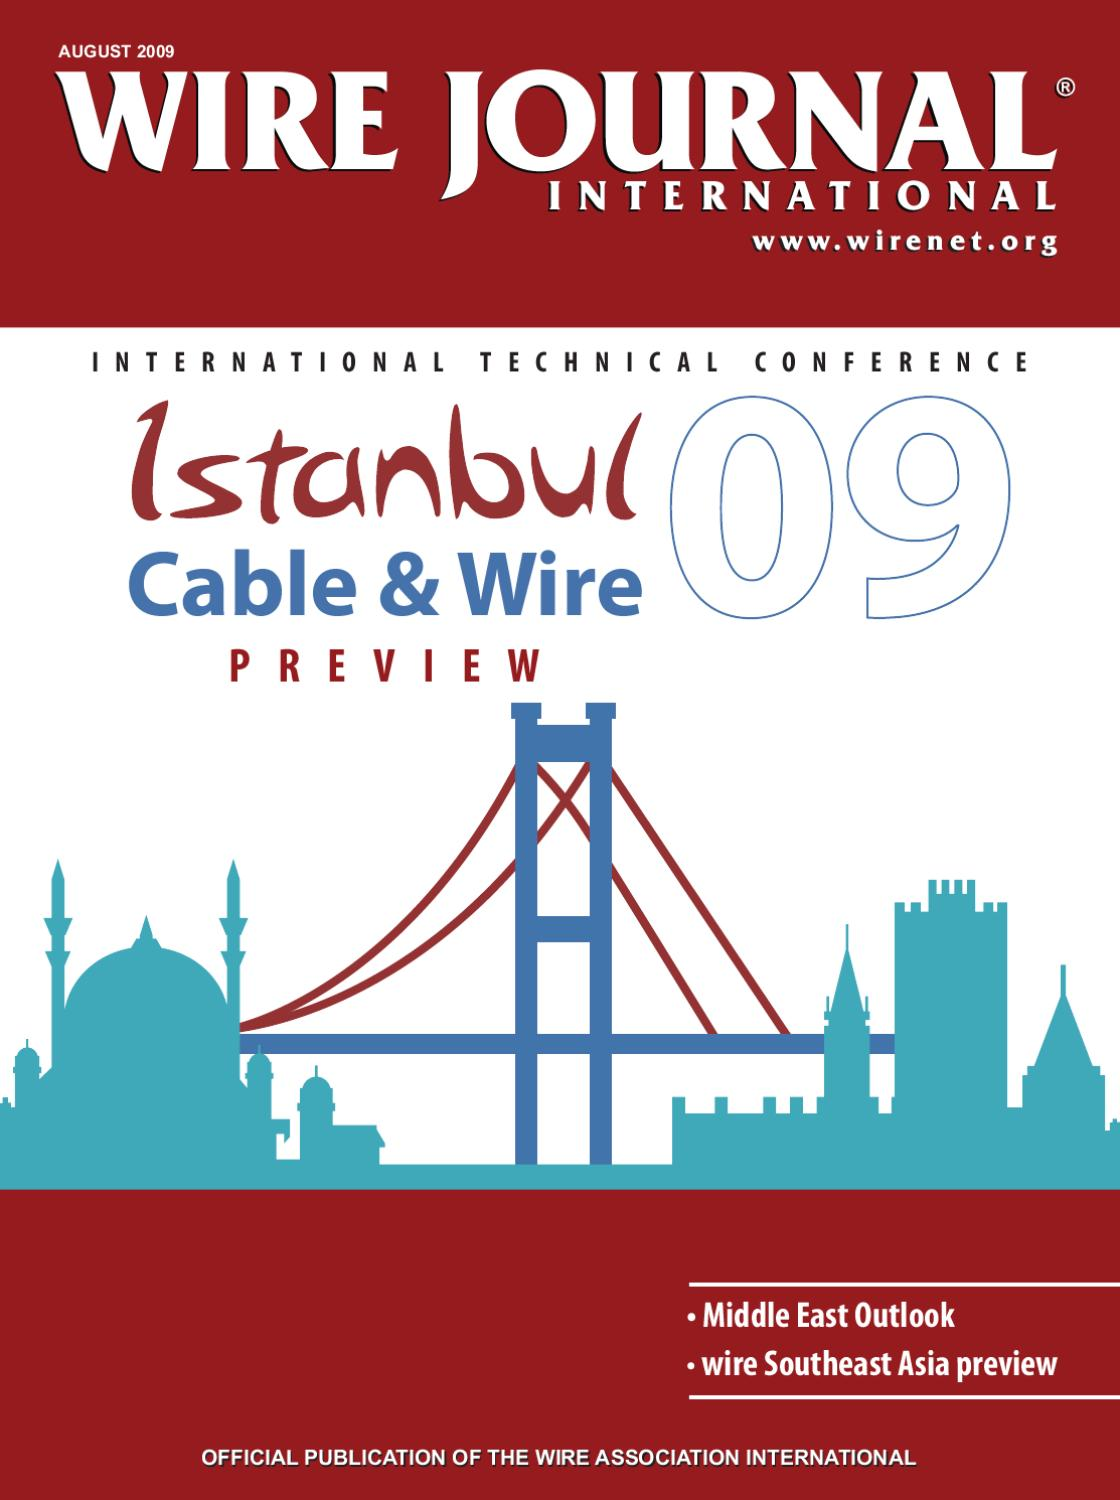 Istanbul Cable & Wire 2009 Preview by Wire Journal International ...